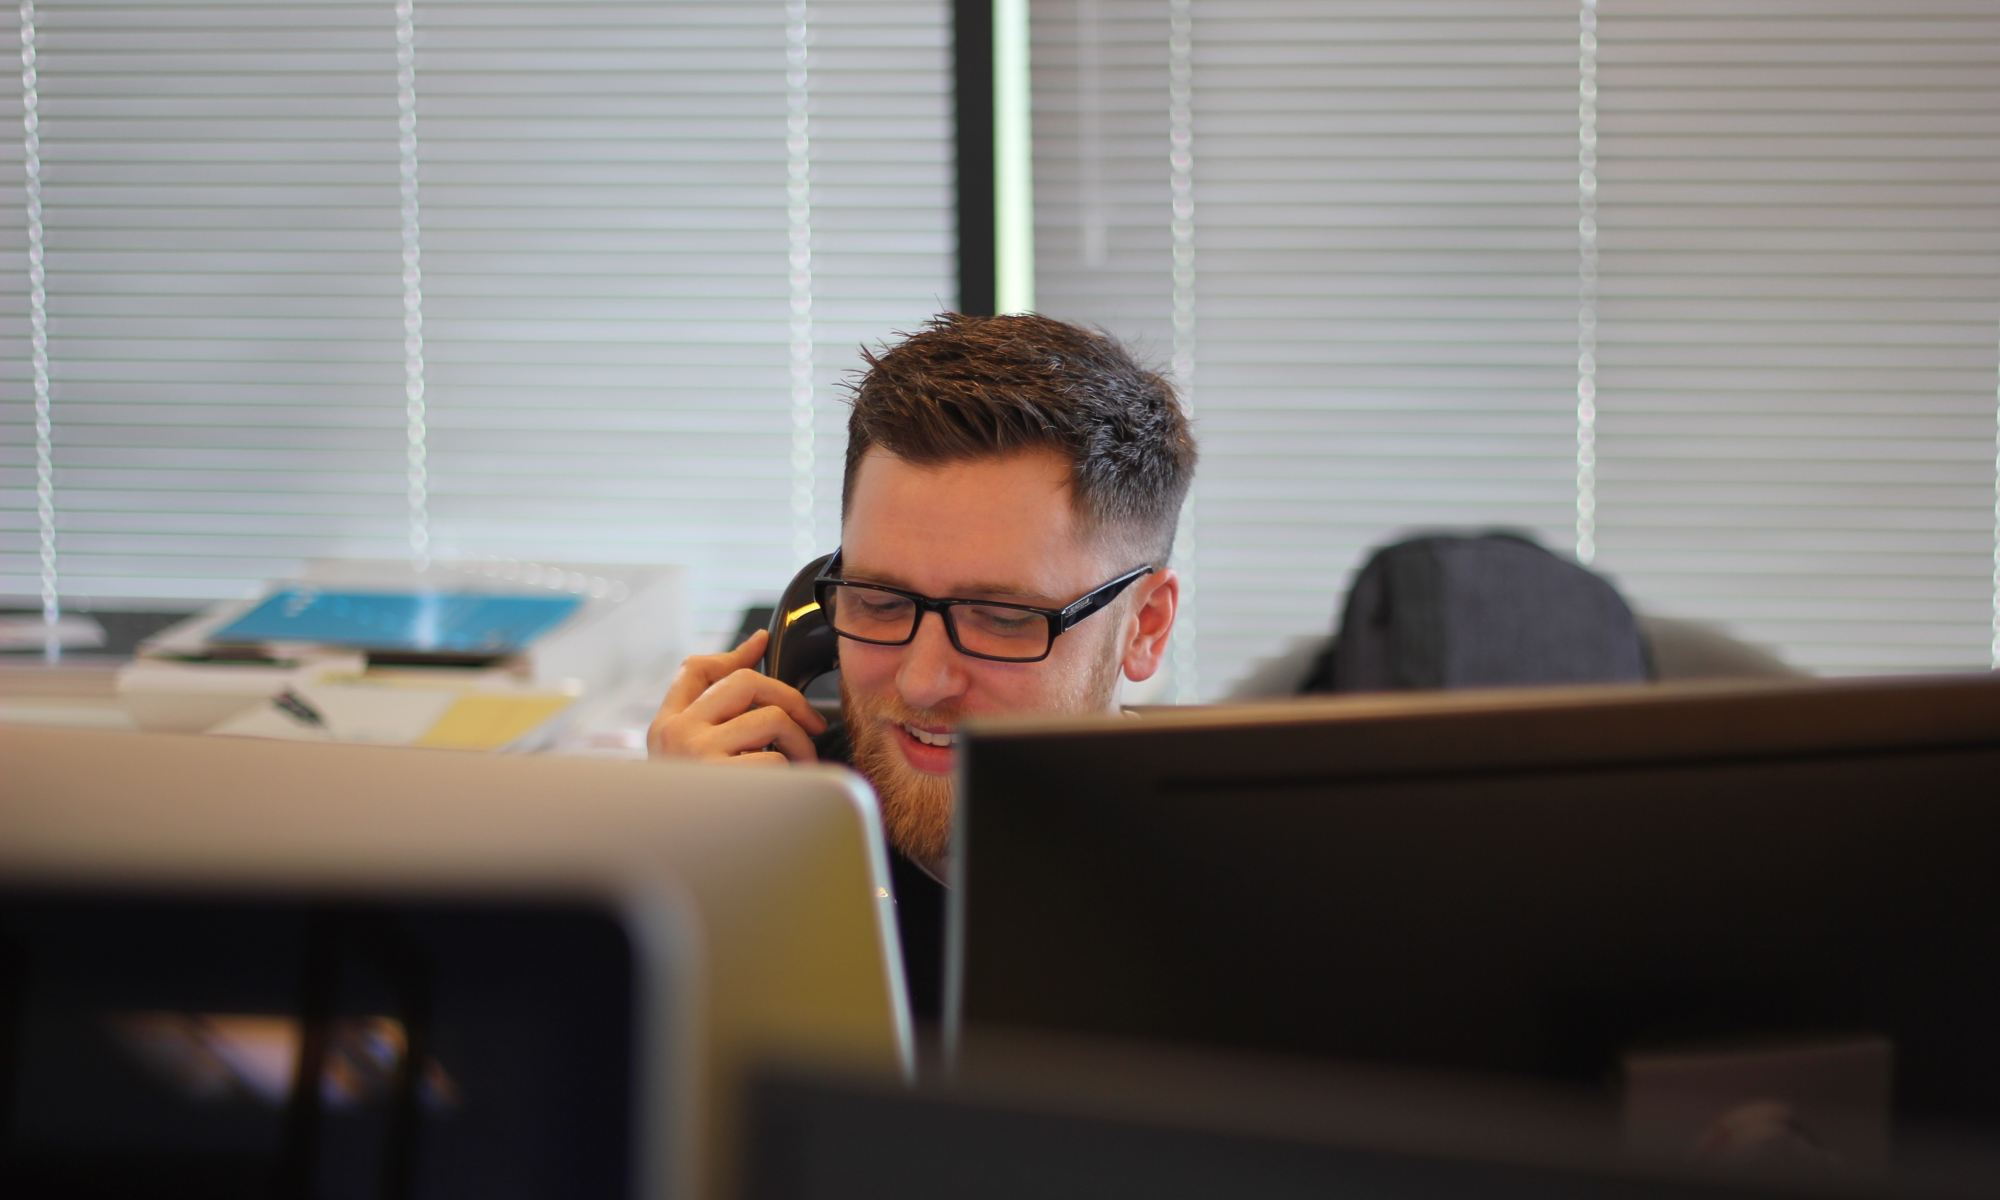 Man in office on telephone